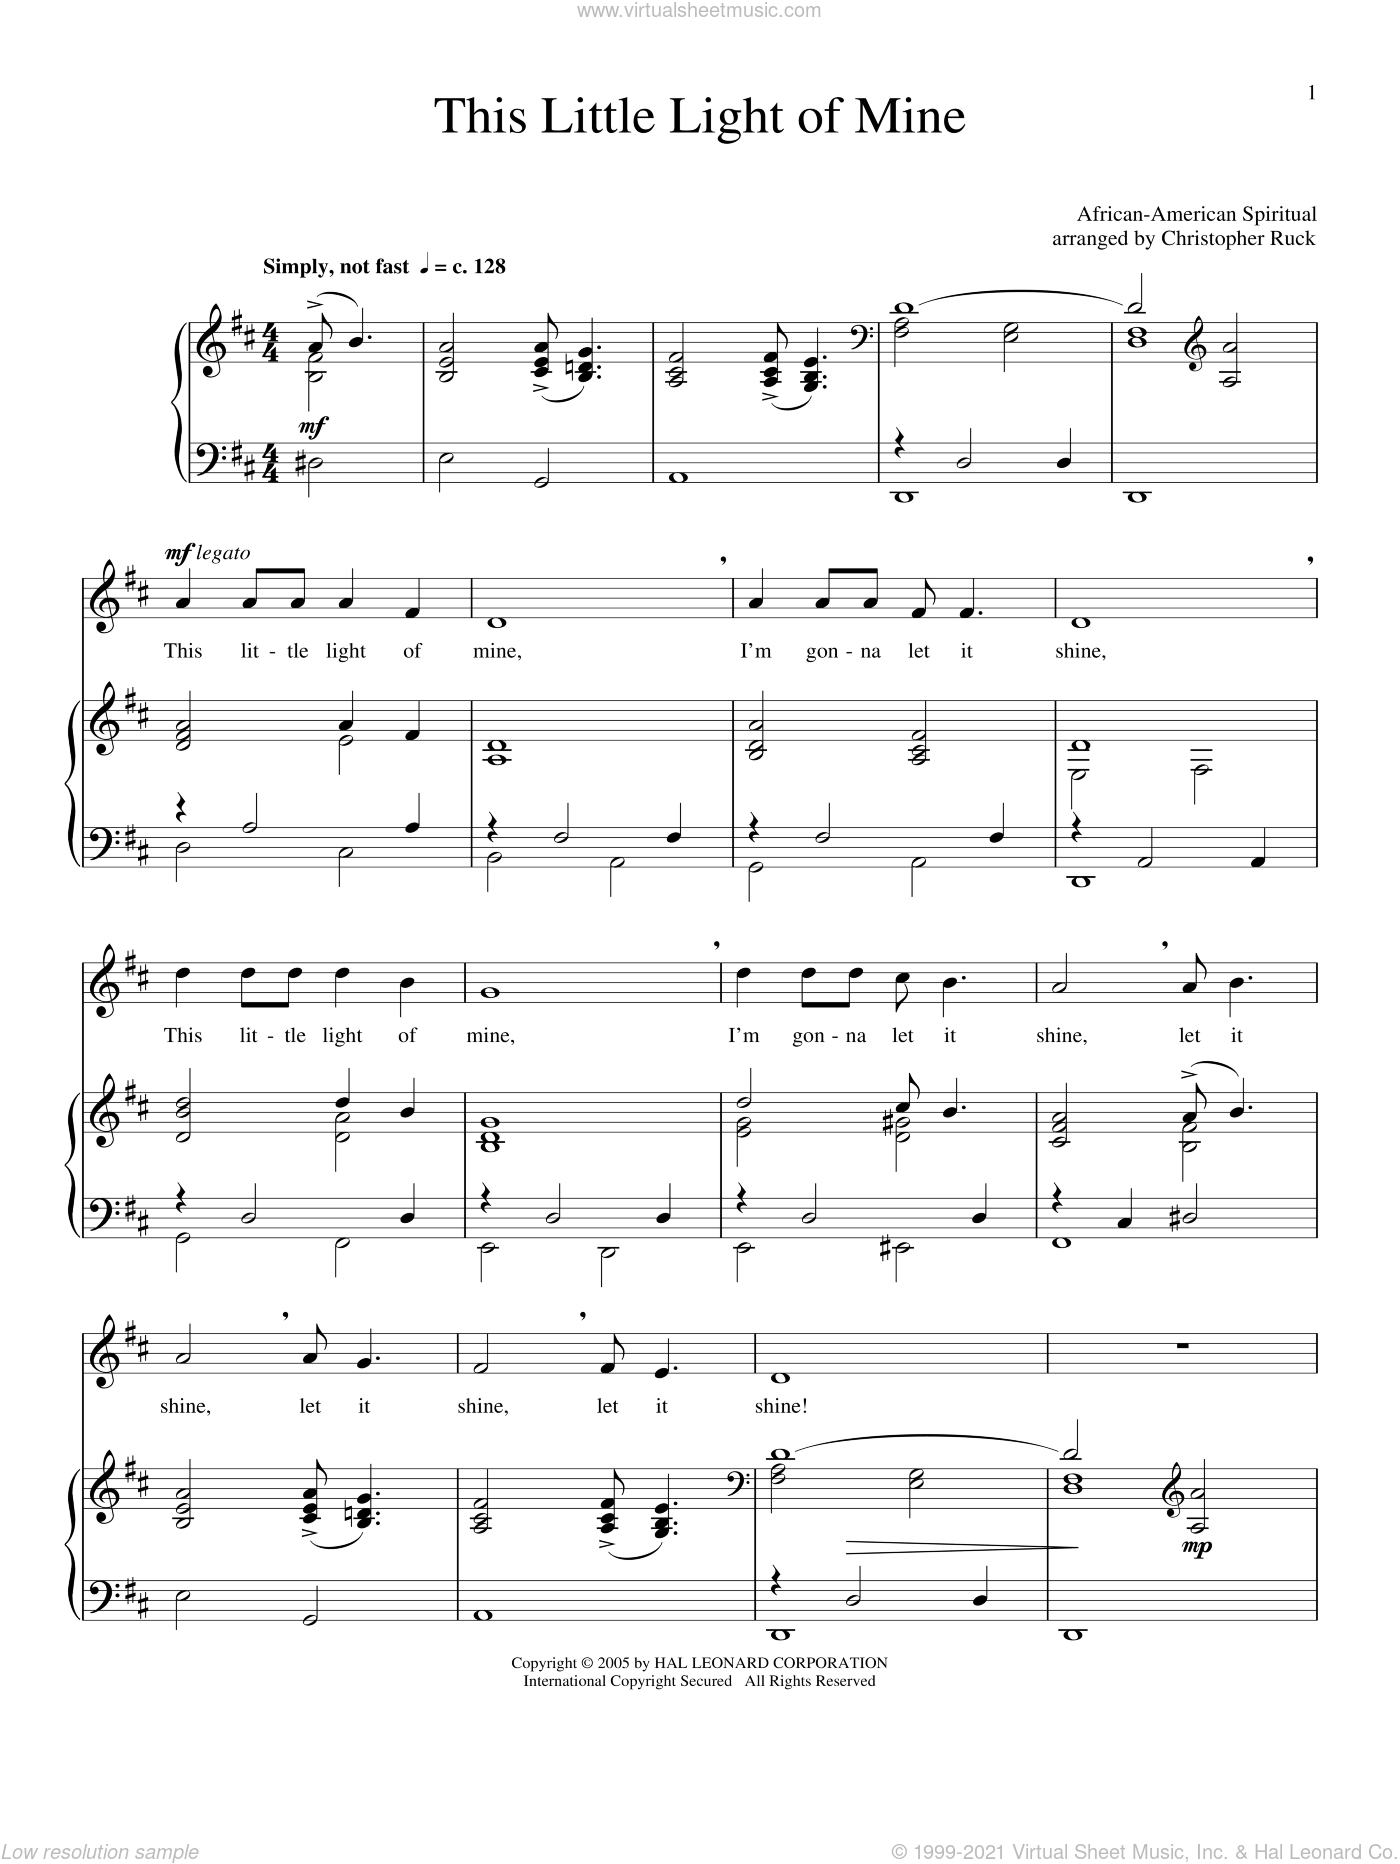 This Little Light Of Mine sheet music for voice and piano, intermediate skill level